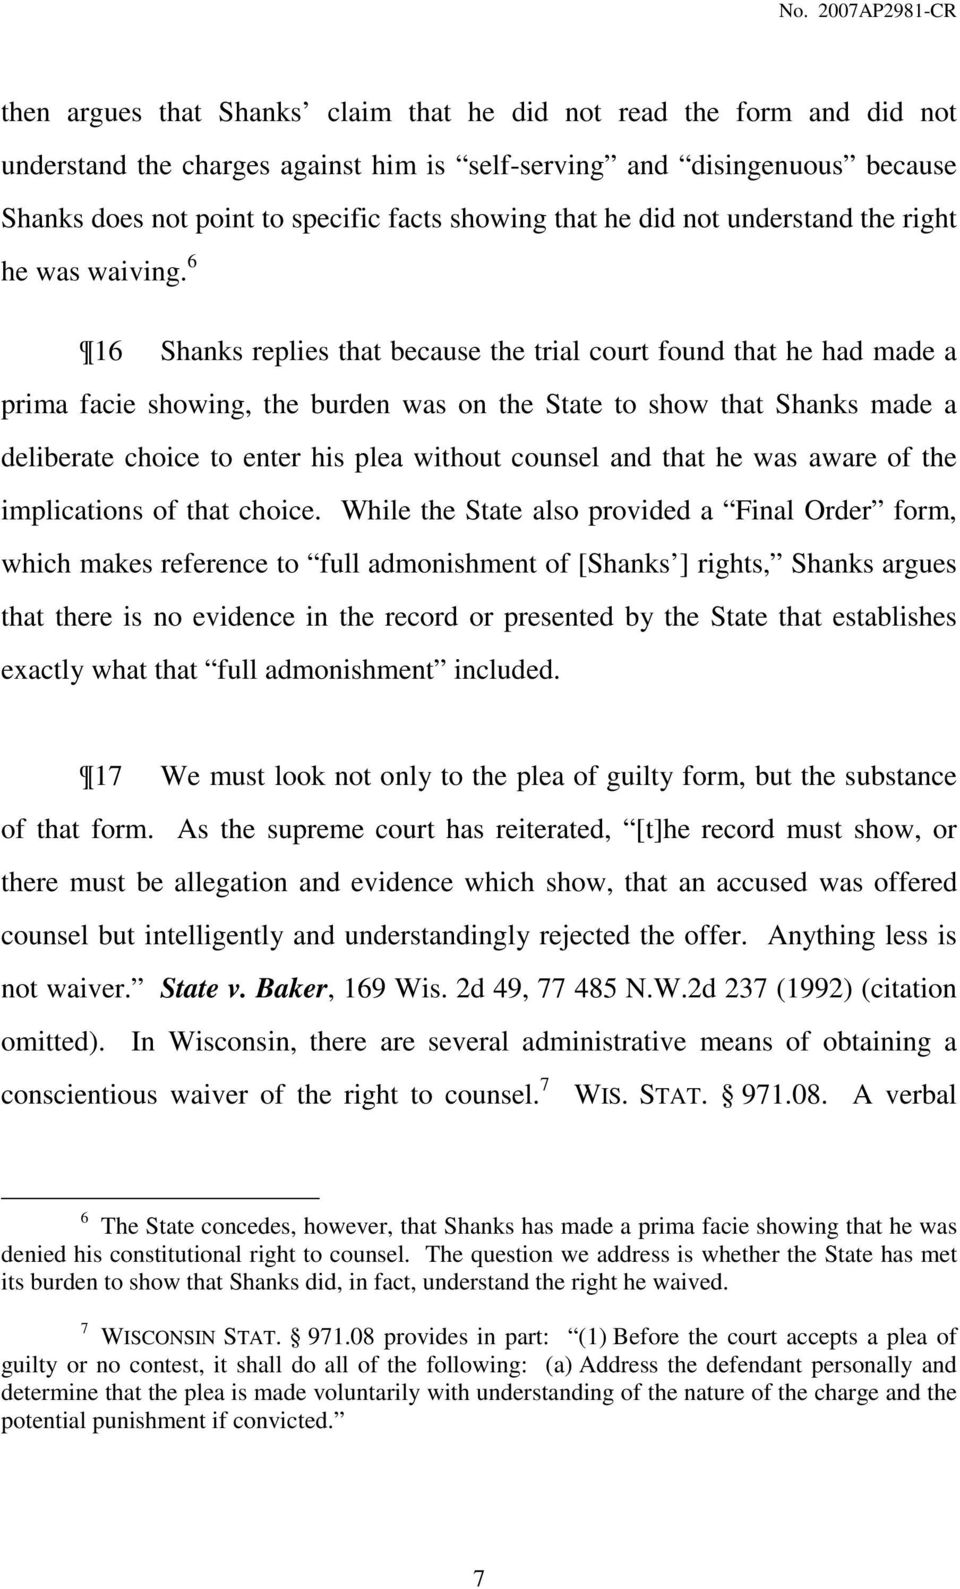 6 16 Shanks replies that because the trial court found that he had made a prima facie showing, the burden was on the State to show that Shanks made a deliberate choice to enter his plea without